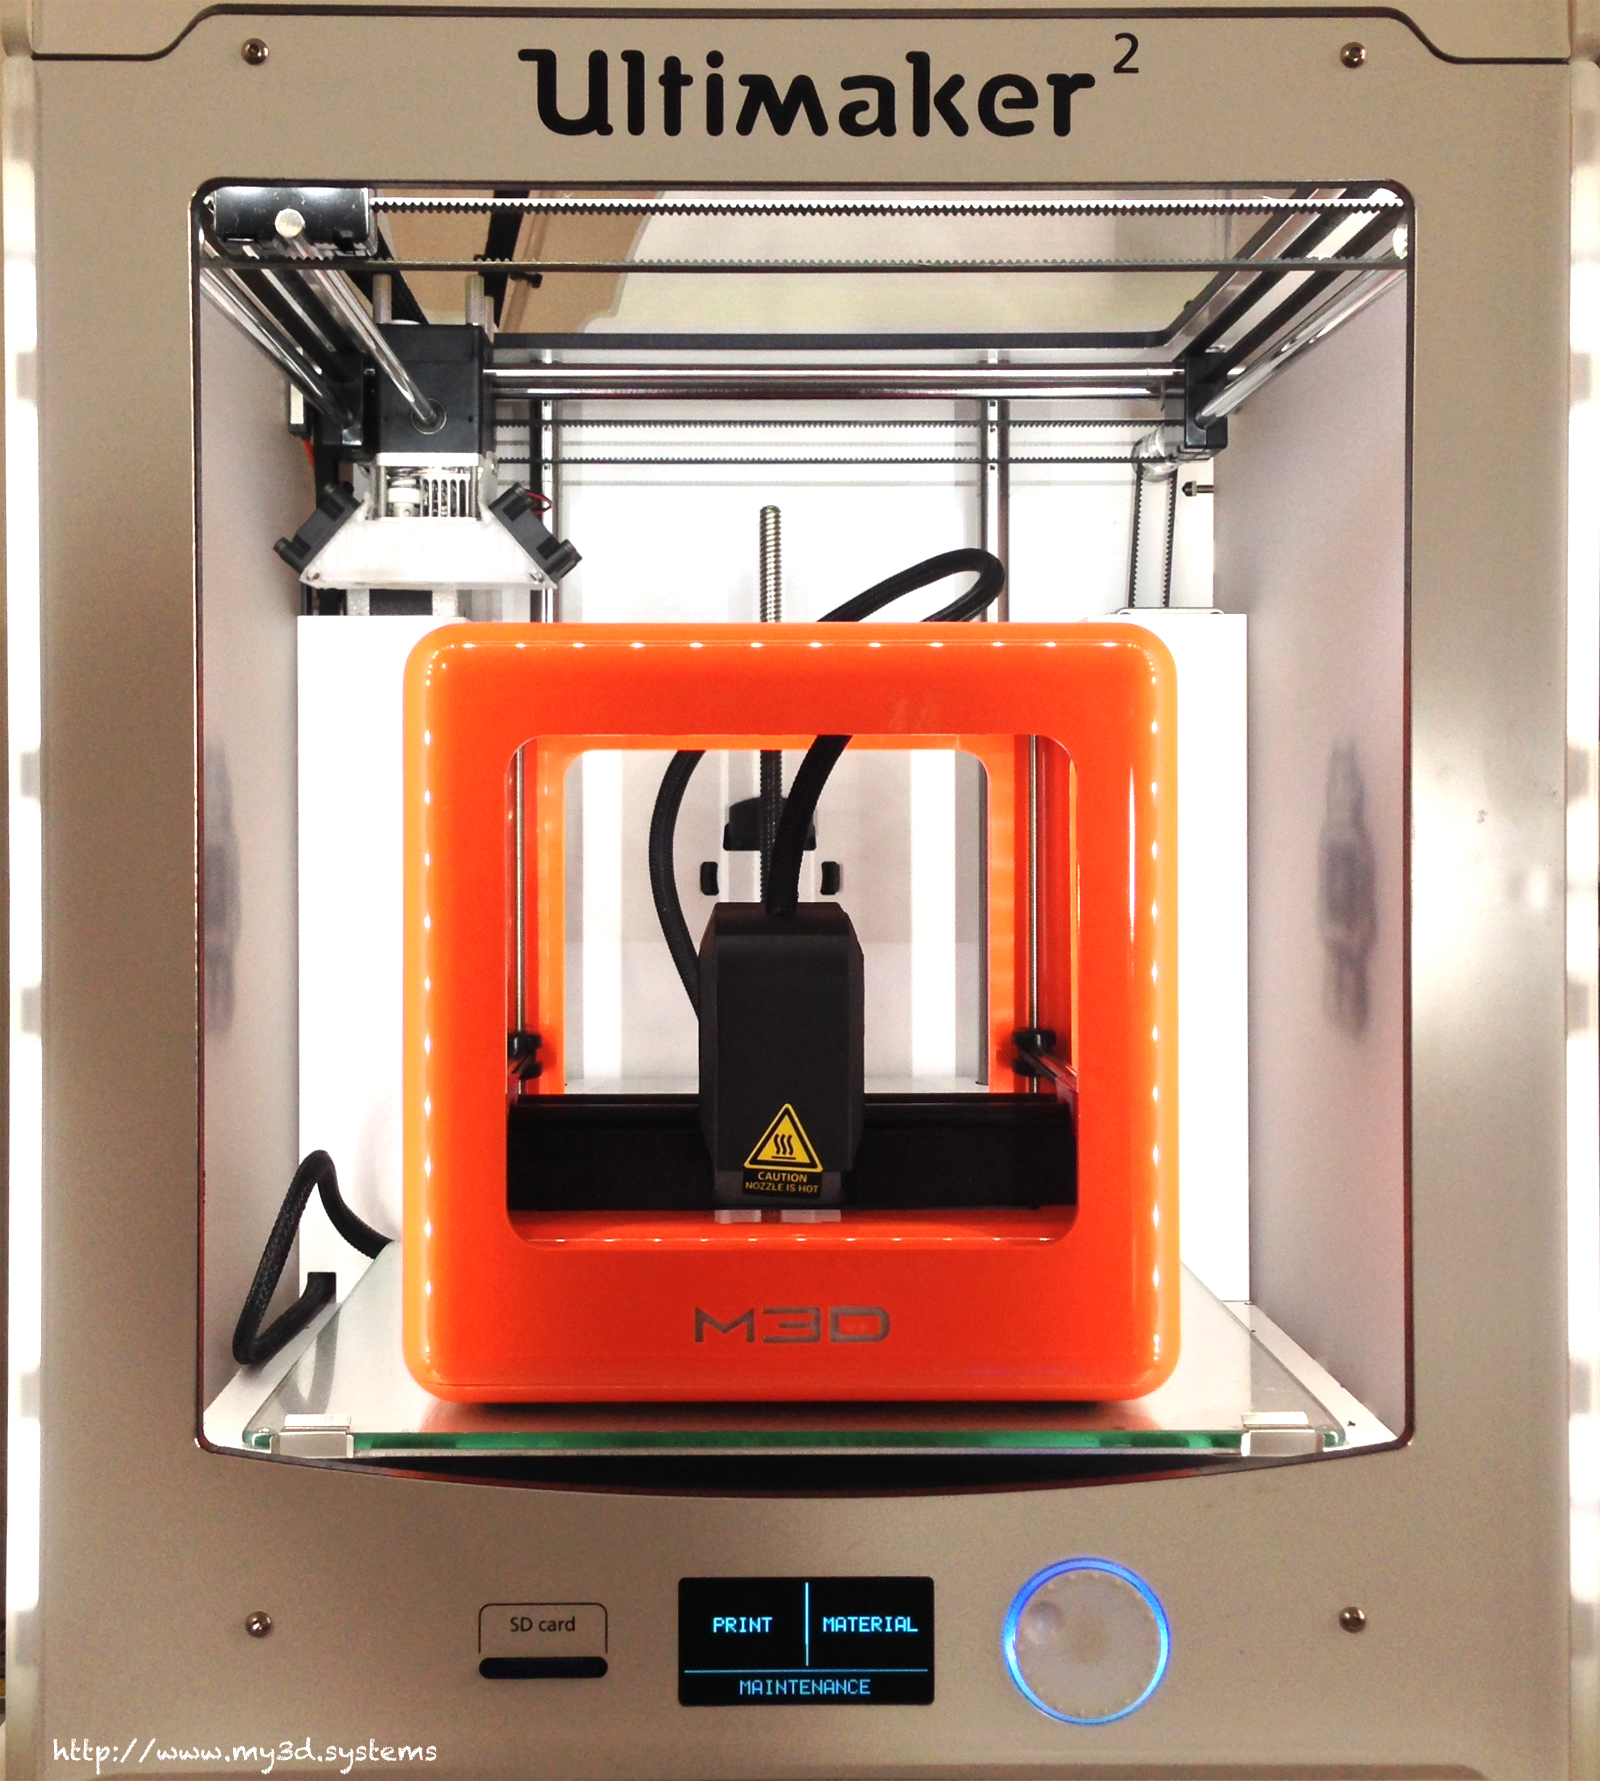 IMG_1773_the_micro_vs_ultimaker2.jpg